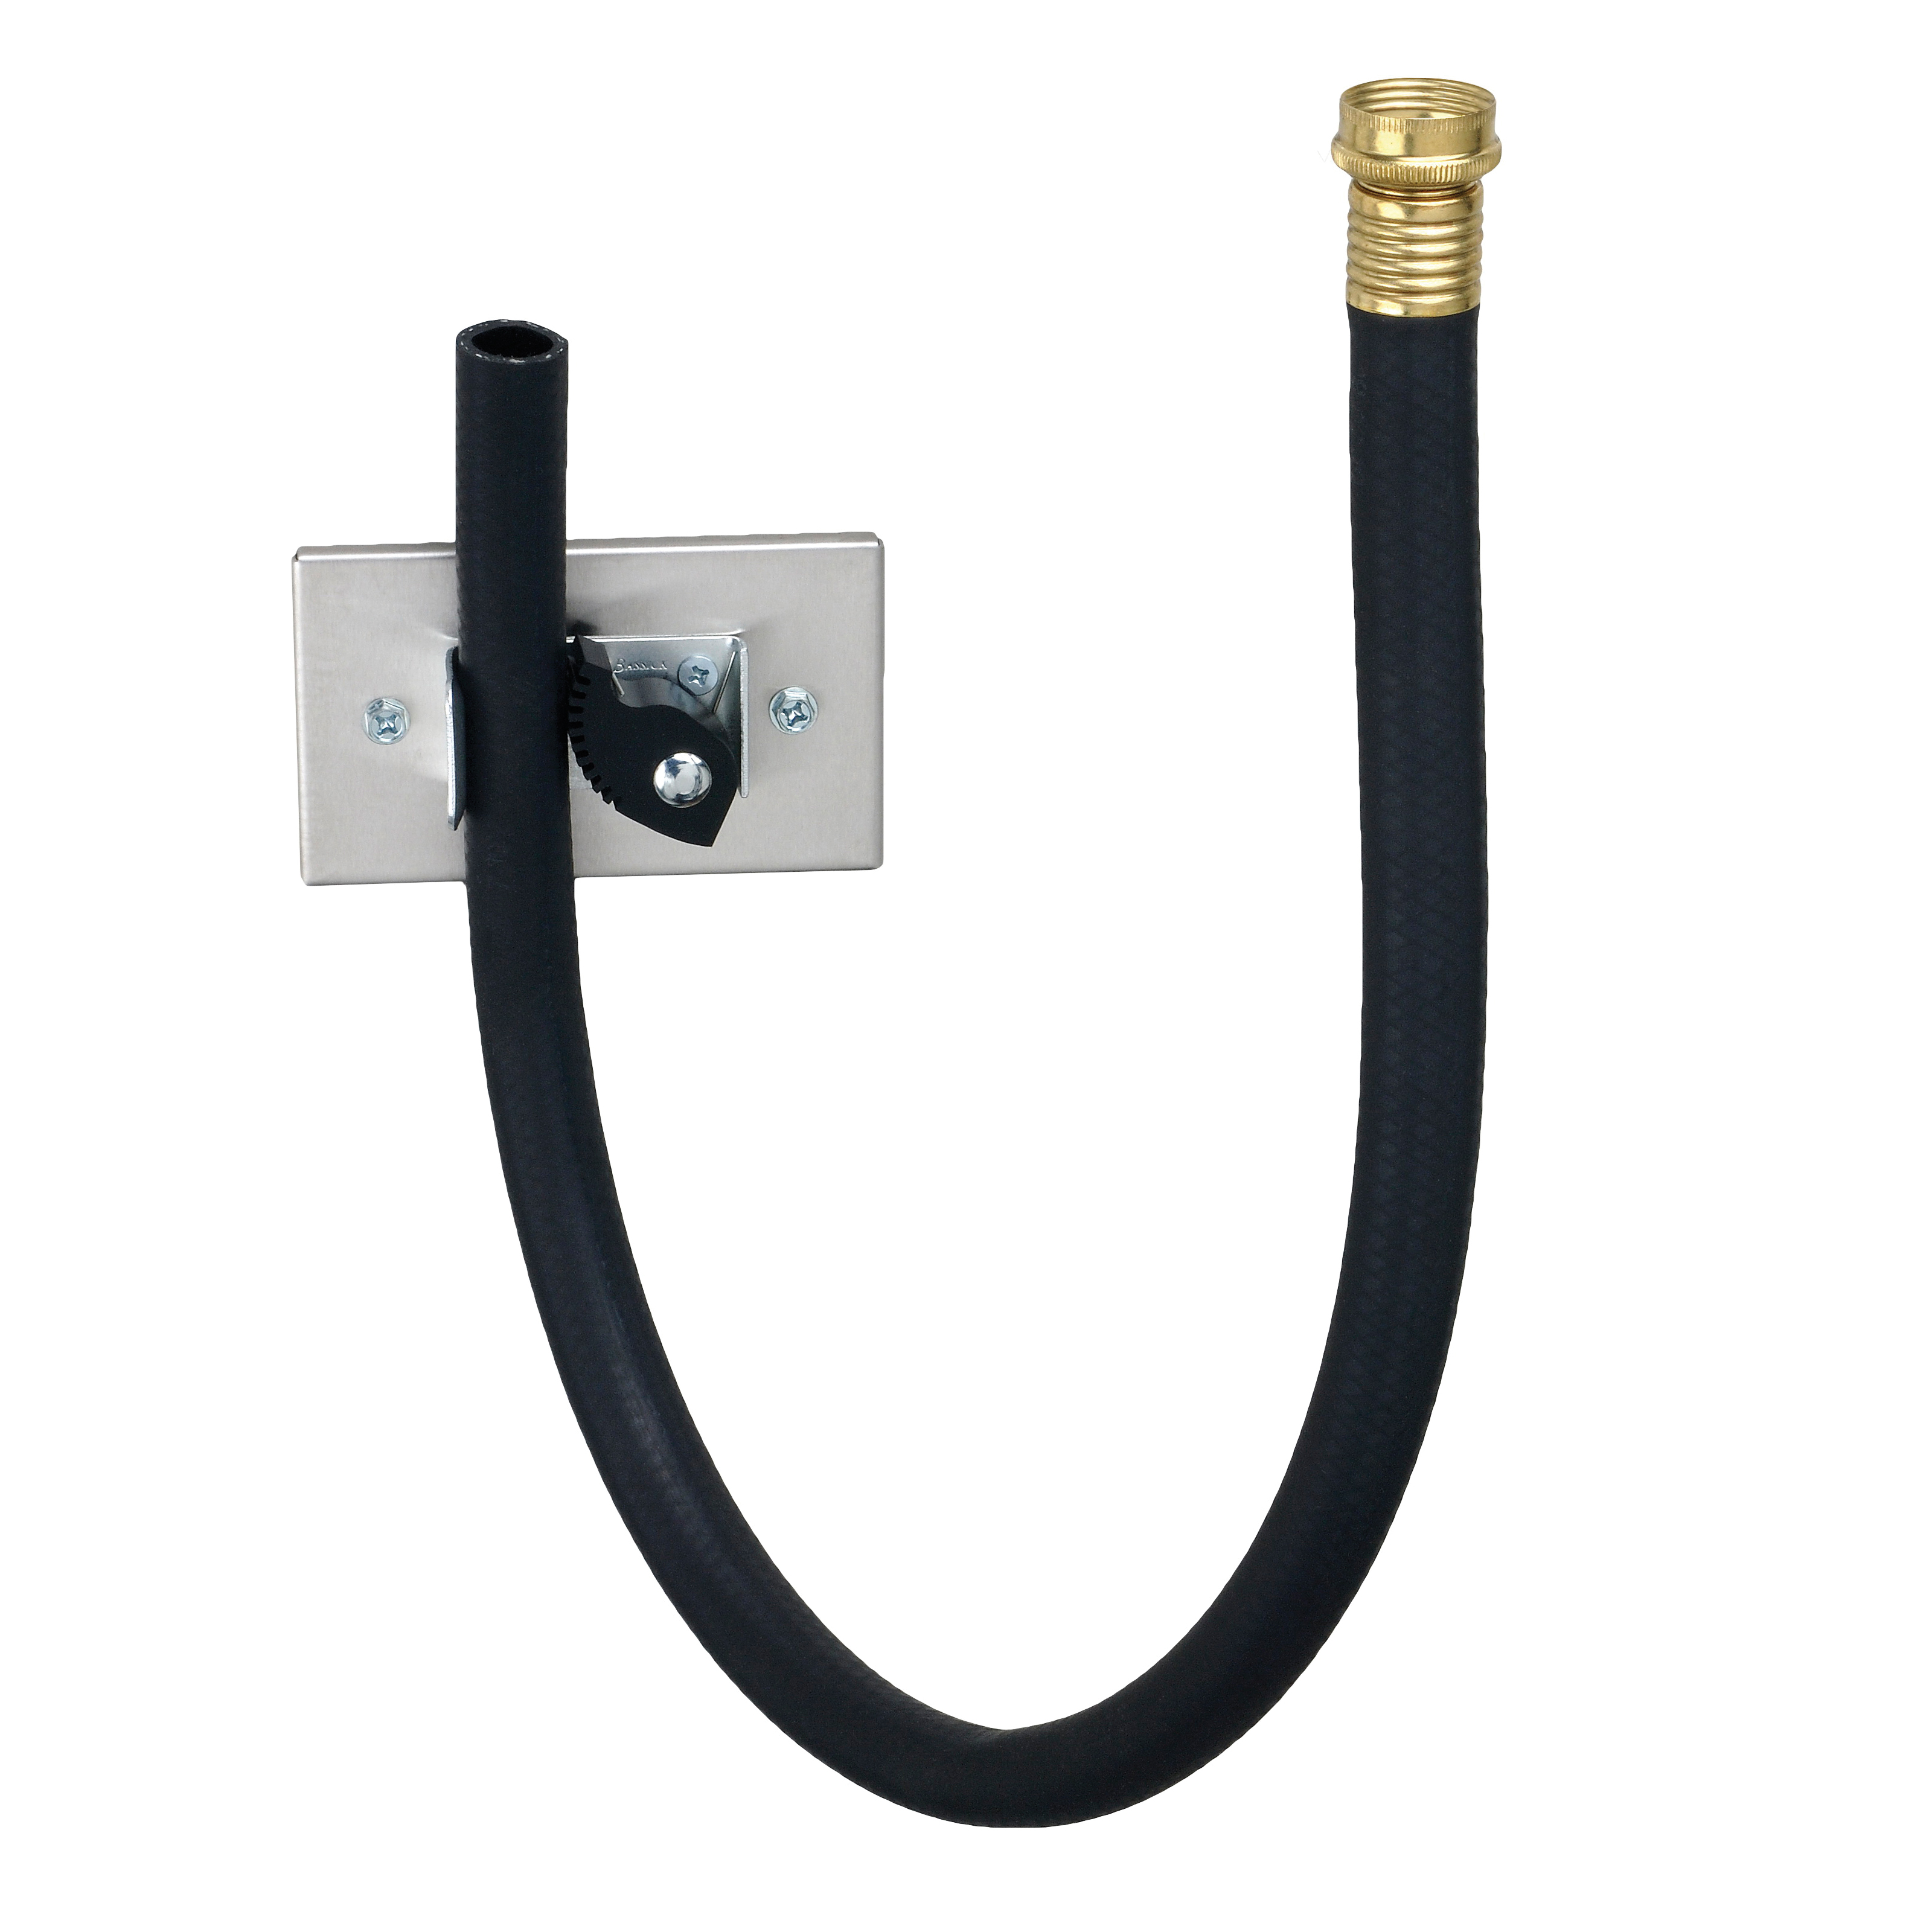 ELM® 65.700 Heavy Duty Hose and Holder Accessory, 5/8 in Pipe